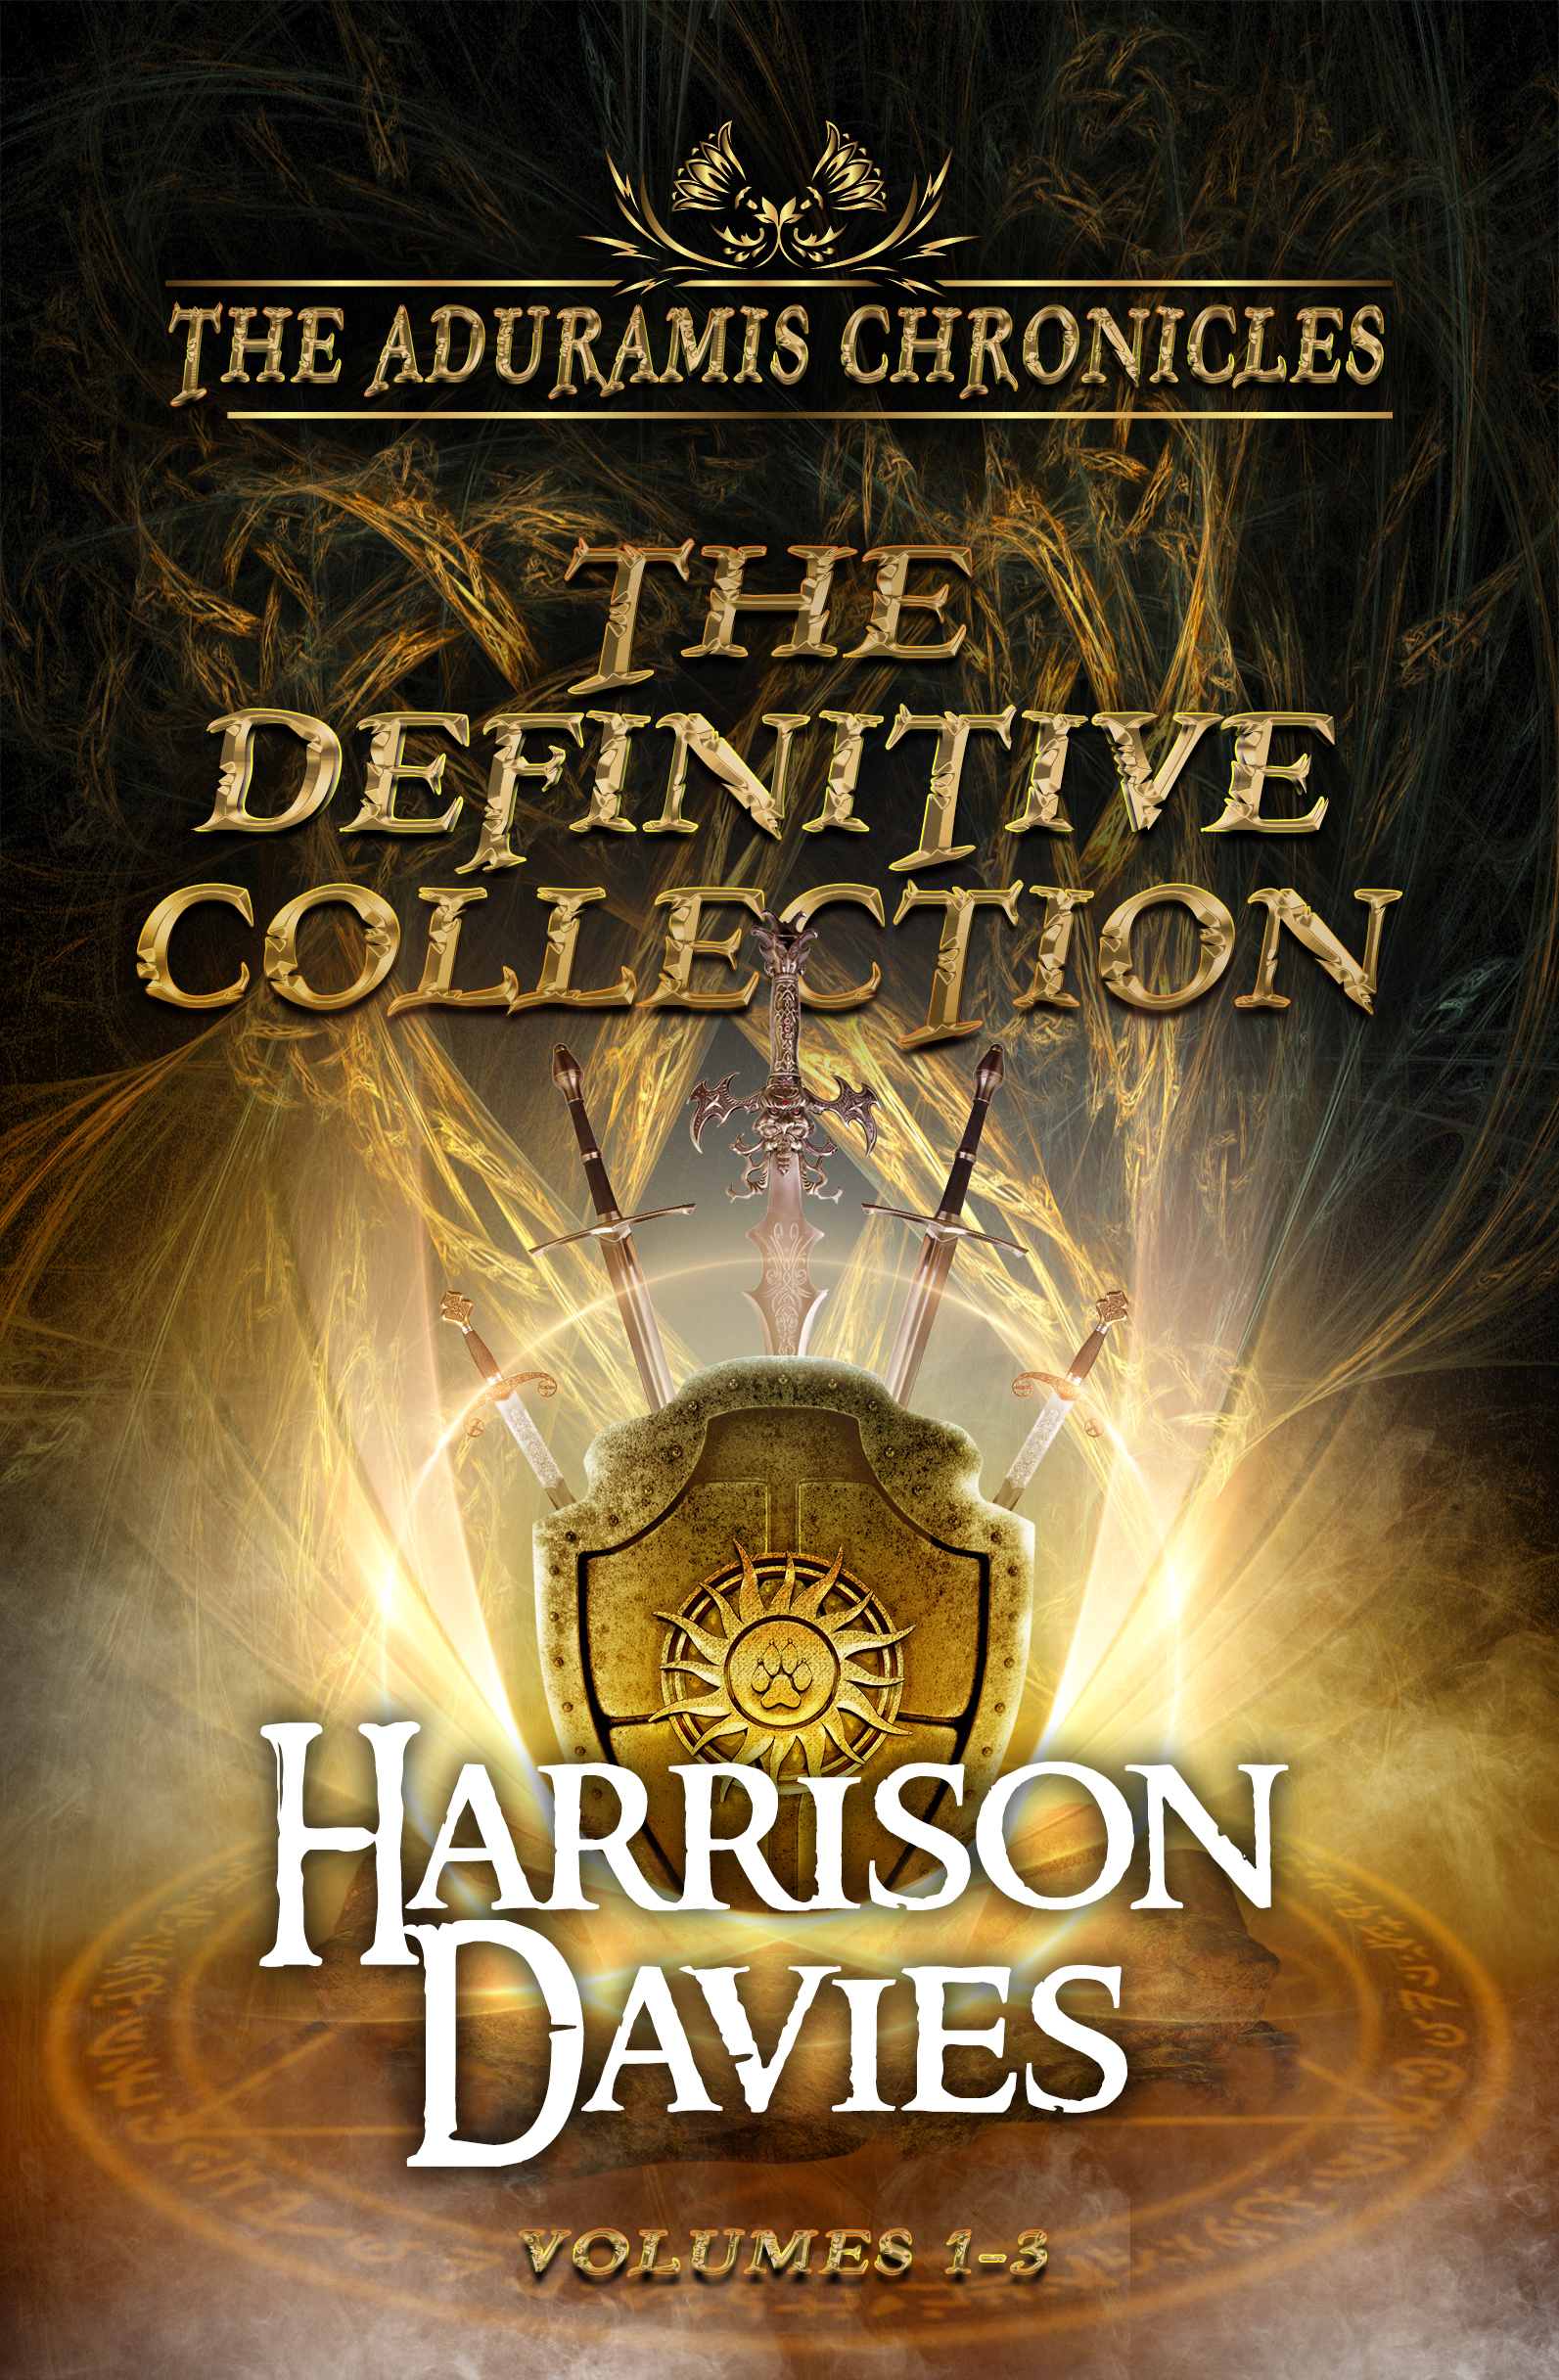 Harrison Davies - The Aduramis Chronicles The Definitive Collection - Volumes 1-3